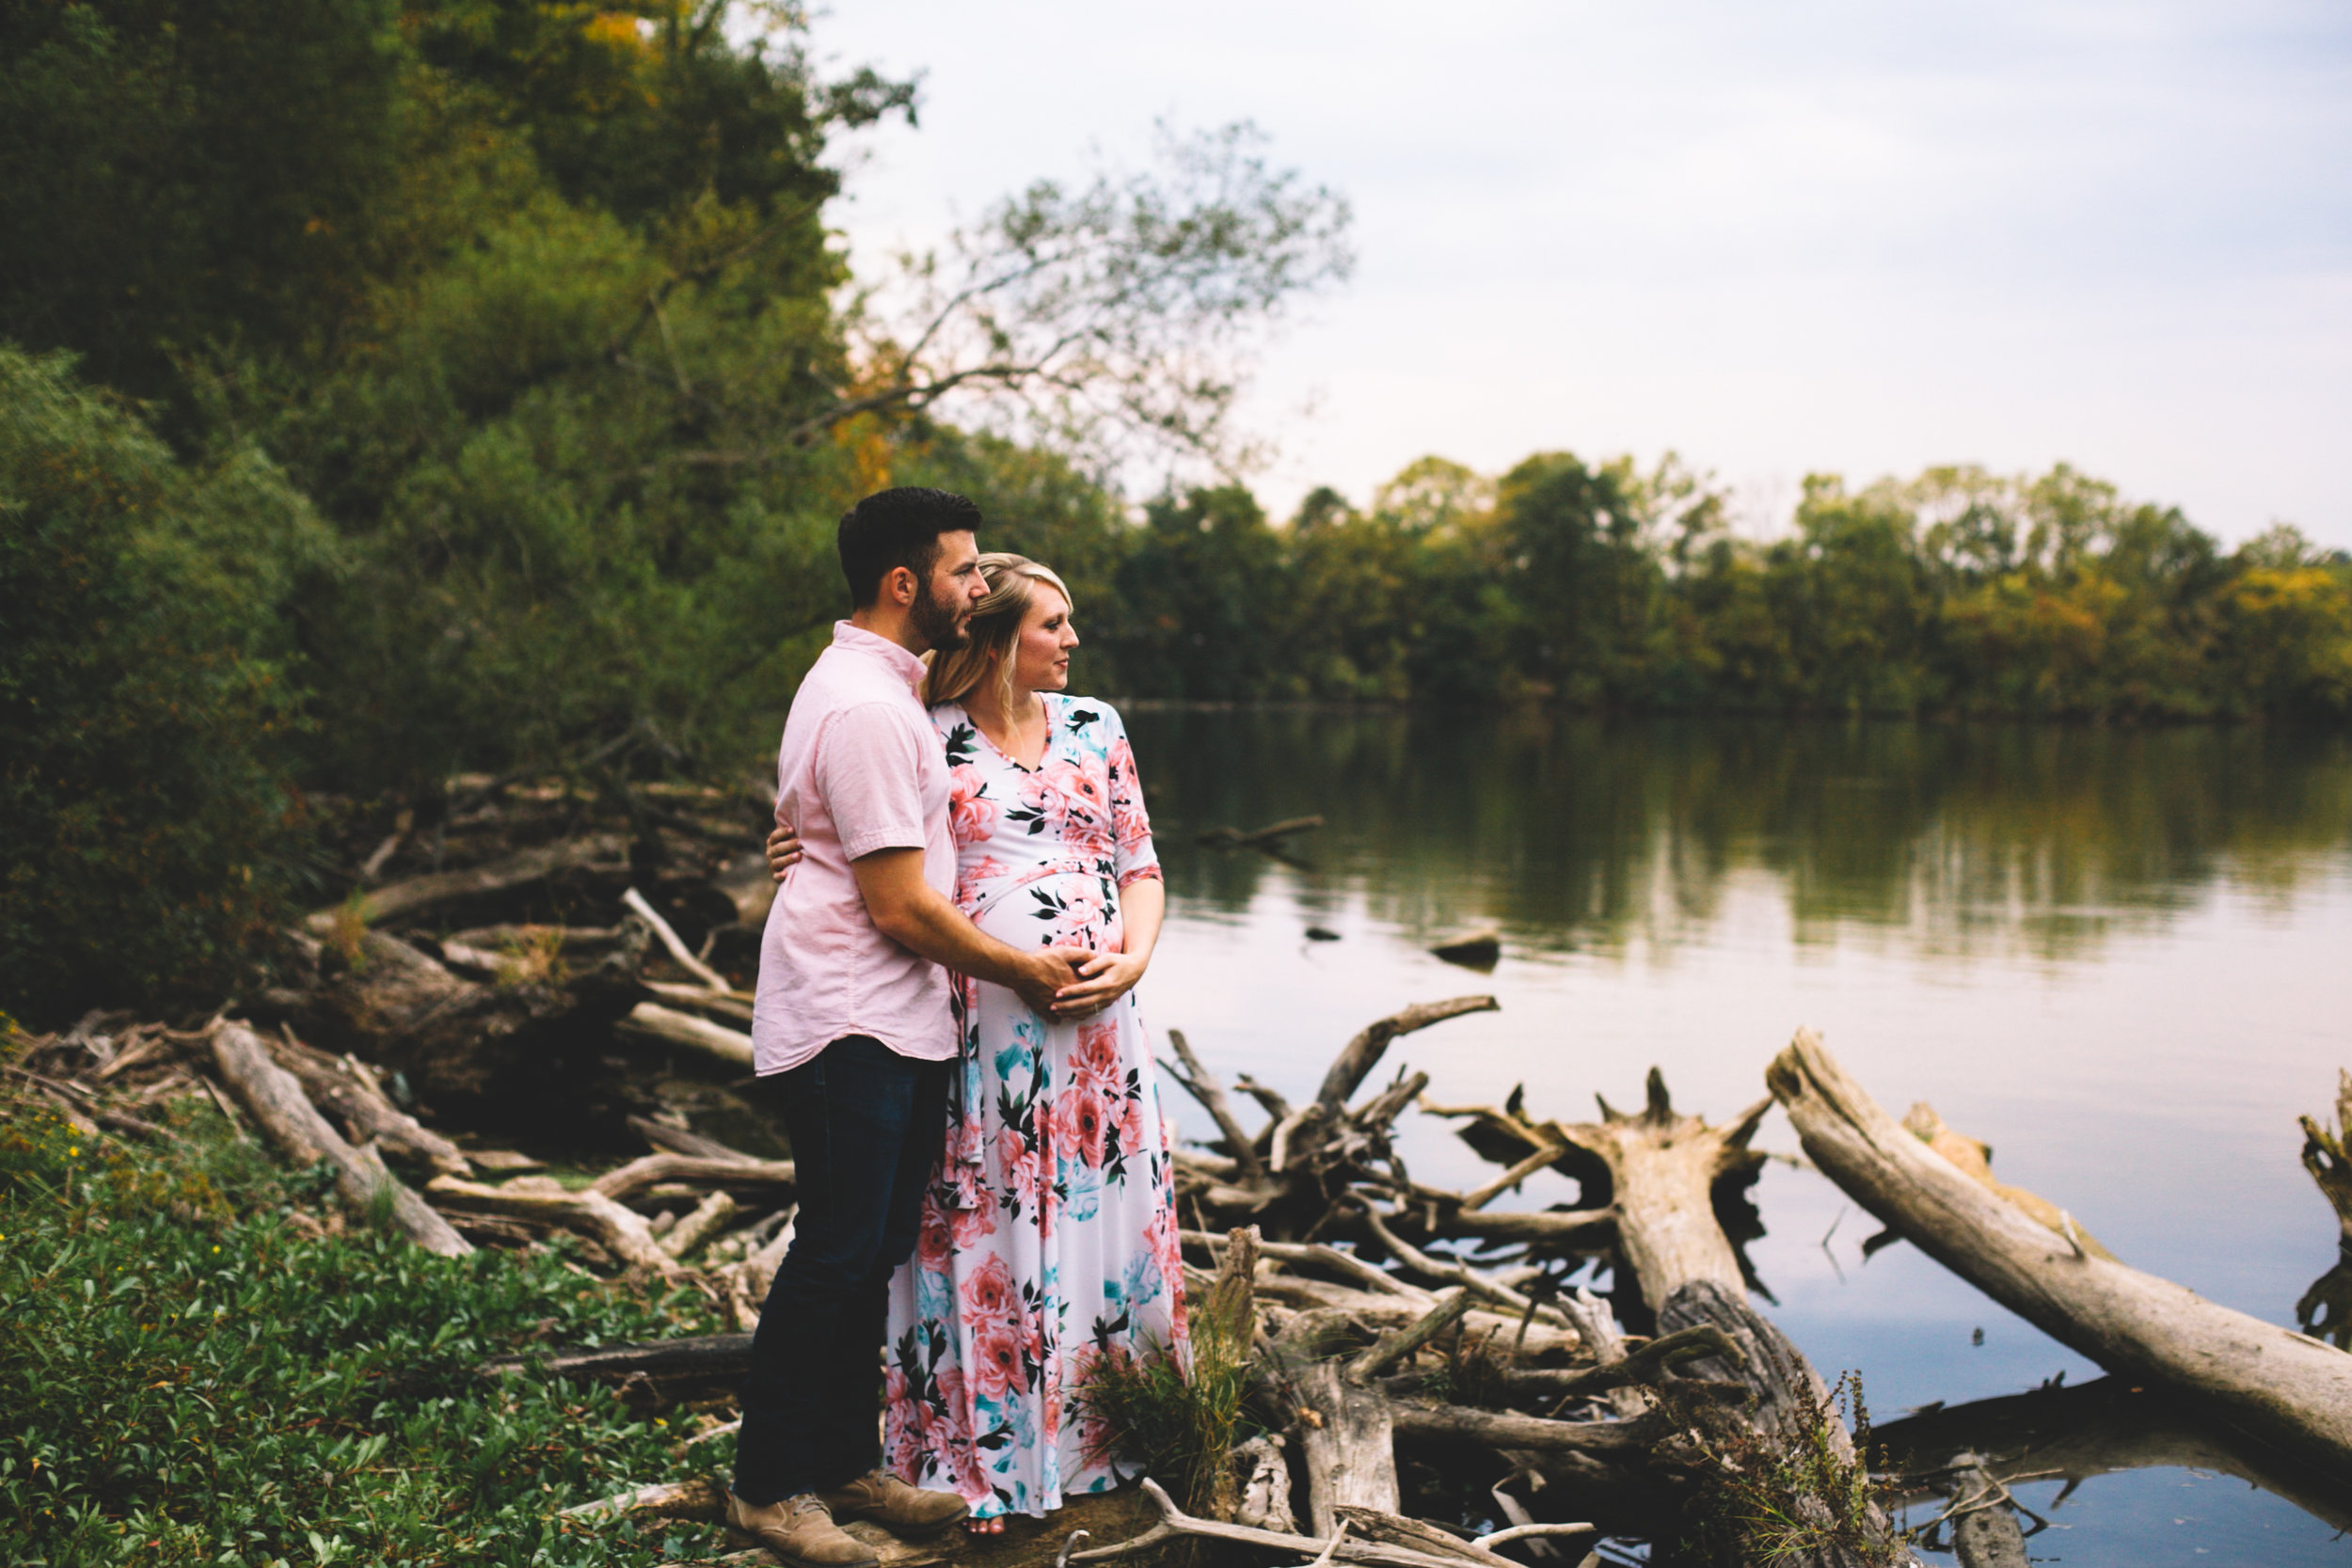 Gibbs Maternity Photo Session at Eagle Creek Park (104 of 126).jpg